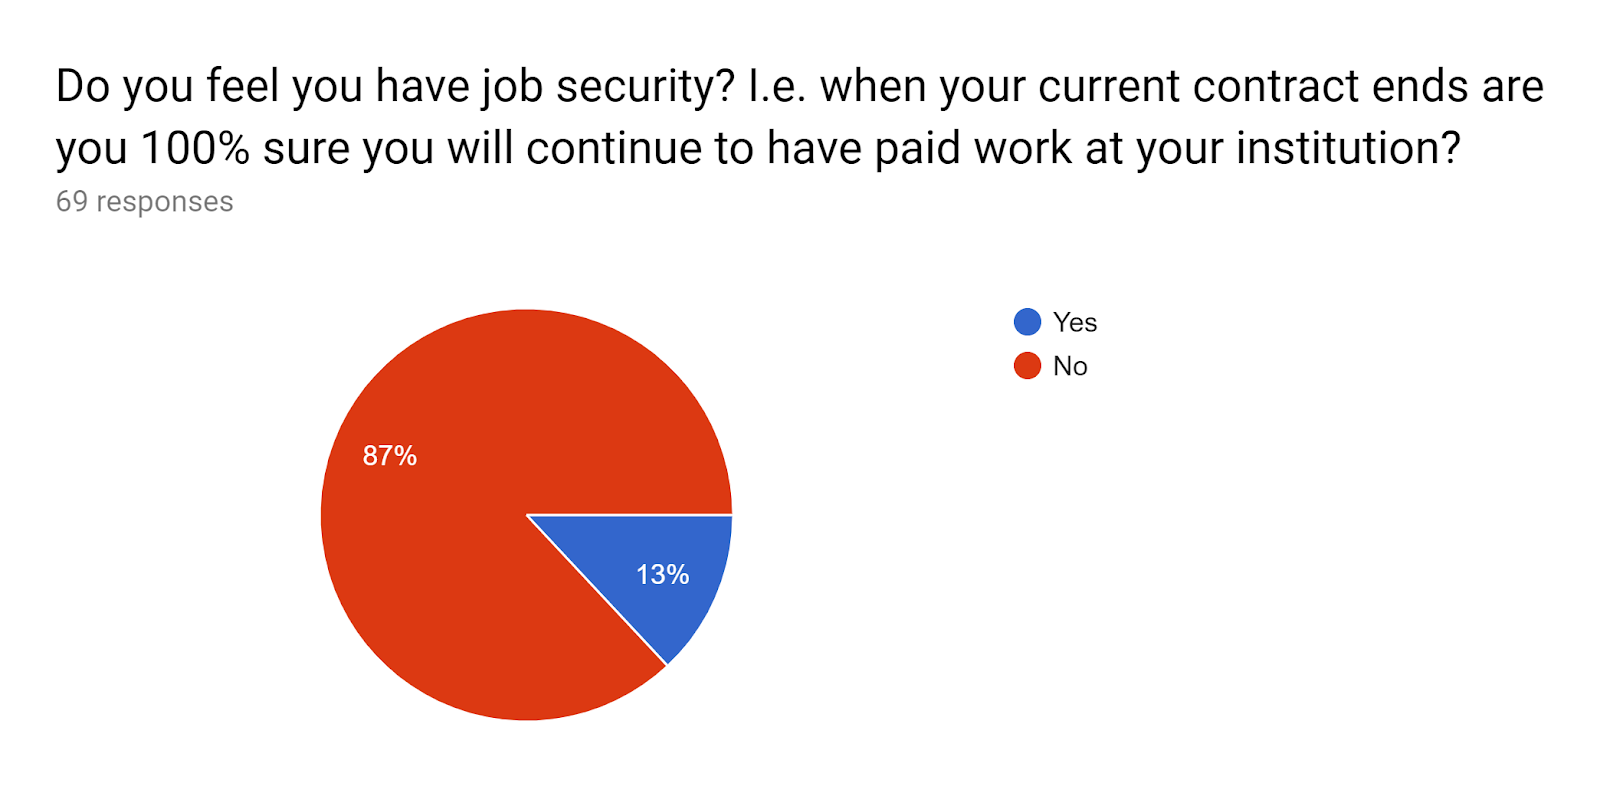 Forms response chart. Question title: Do you feel you have job security? I.e. when your current contract ends are you 100% sure you will continue to have paid work at your institution?. Number of responses: 69 responses.